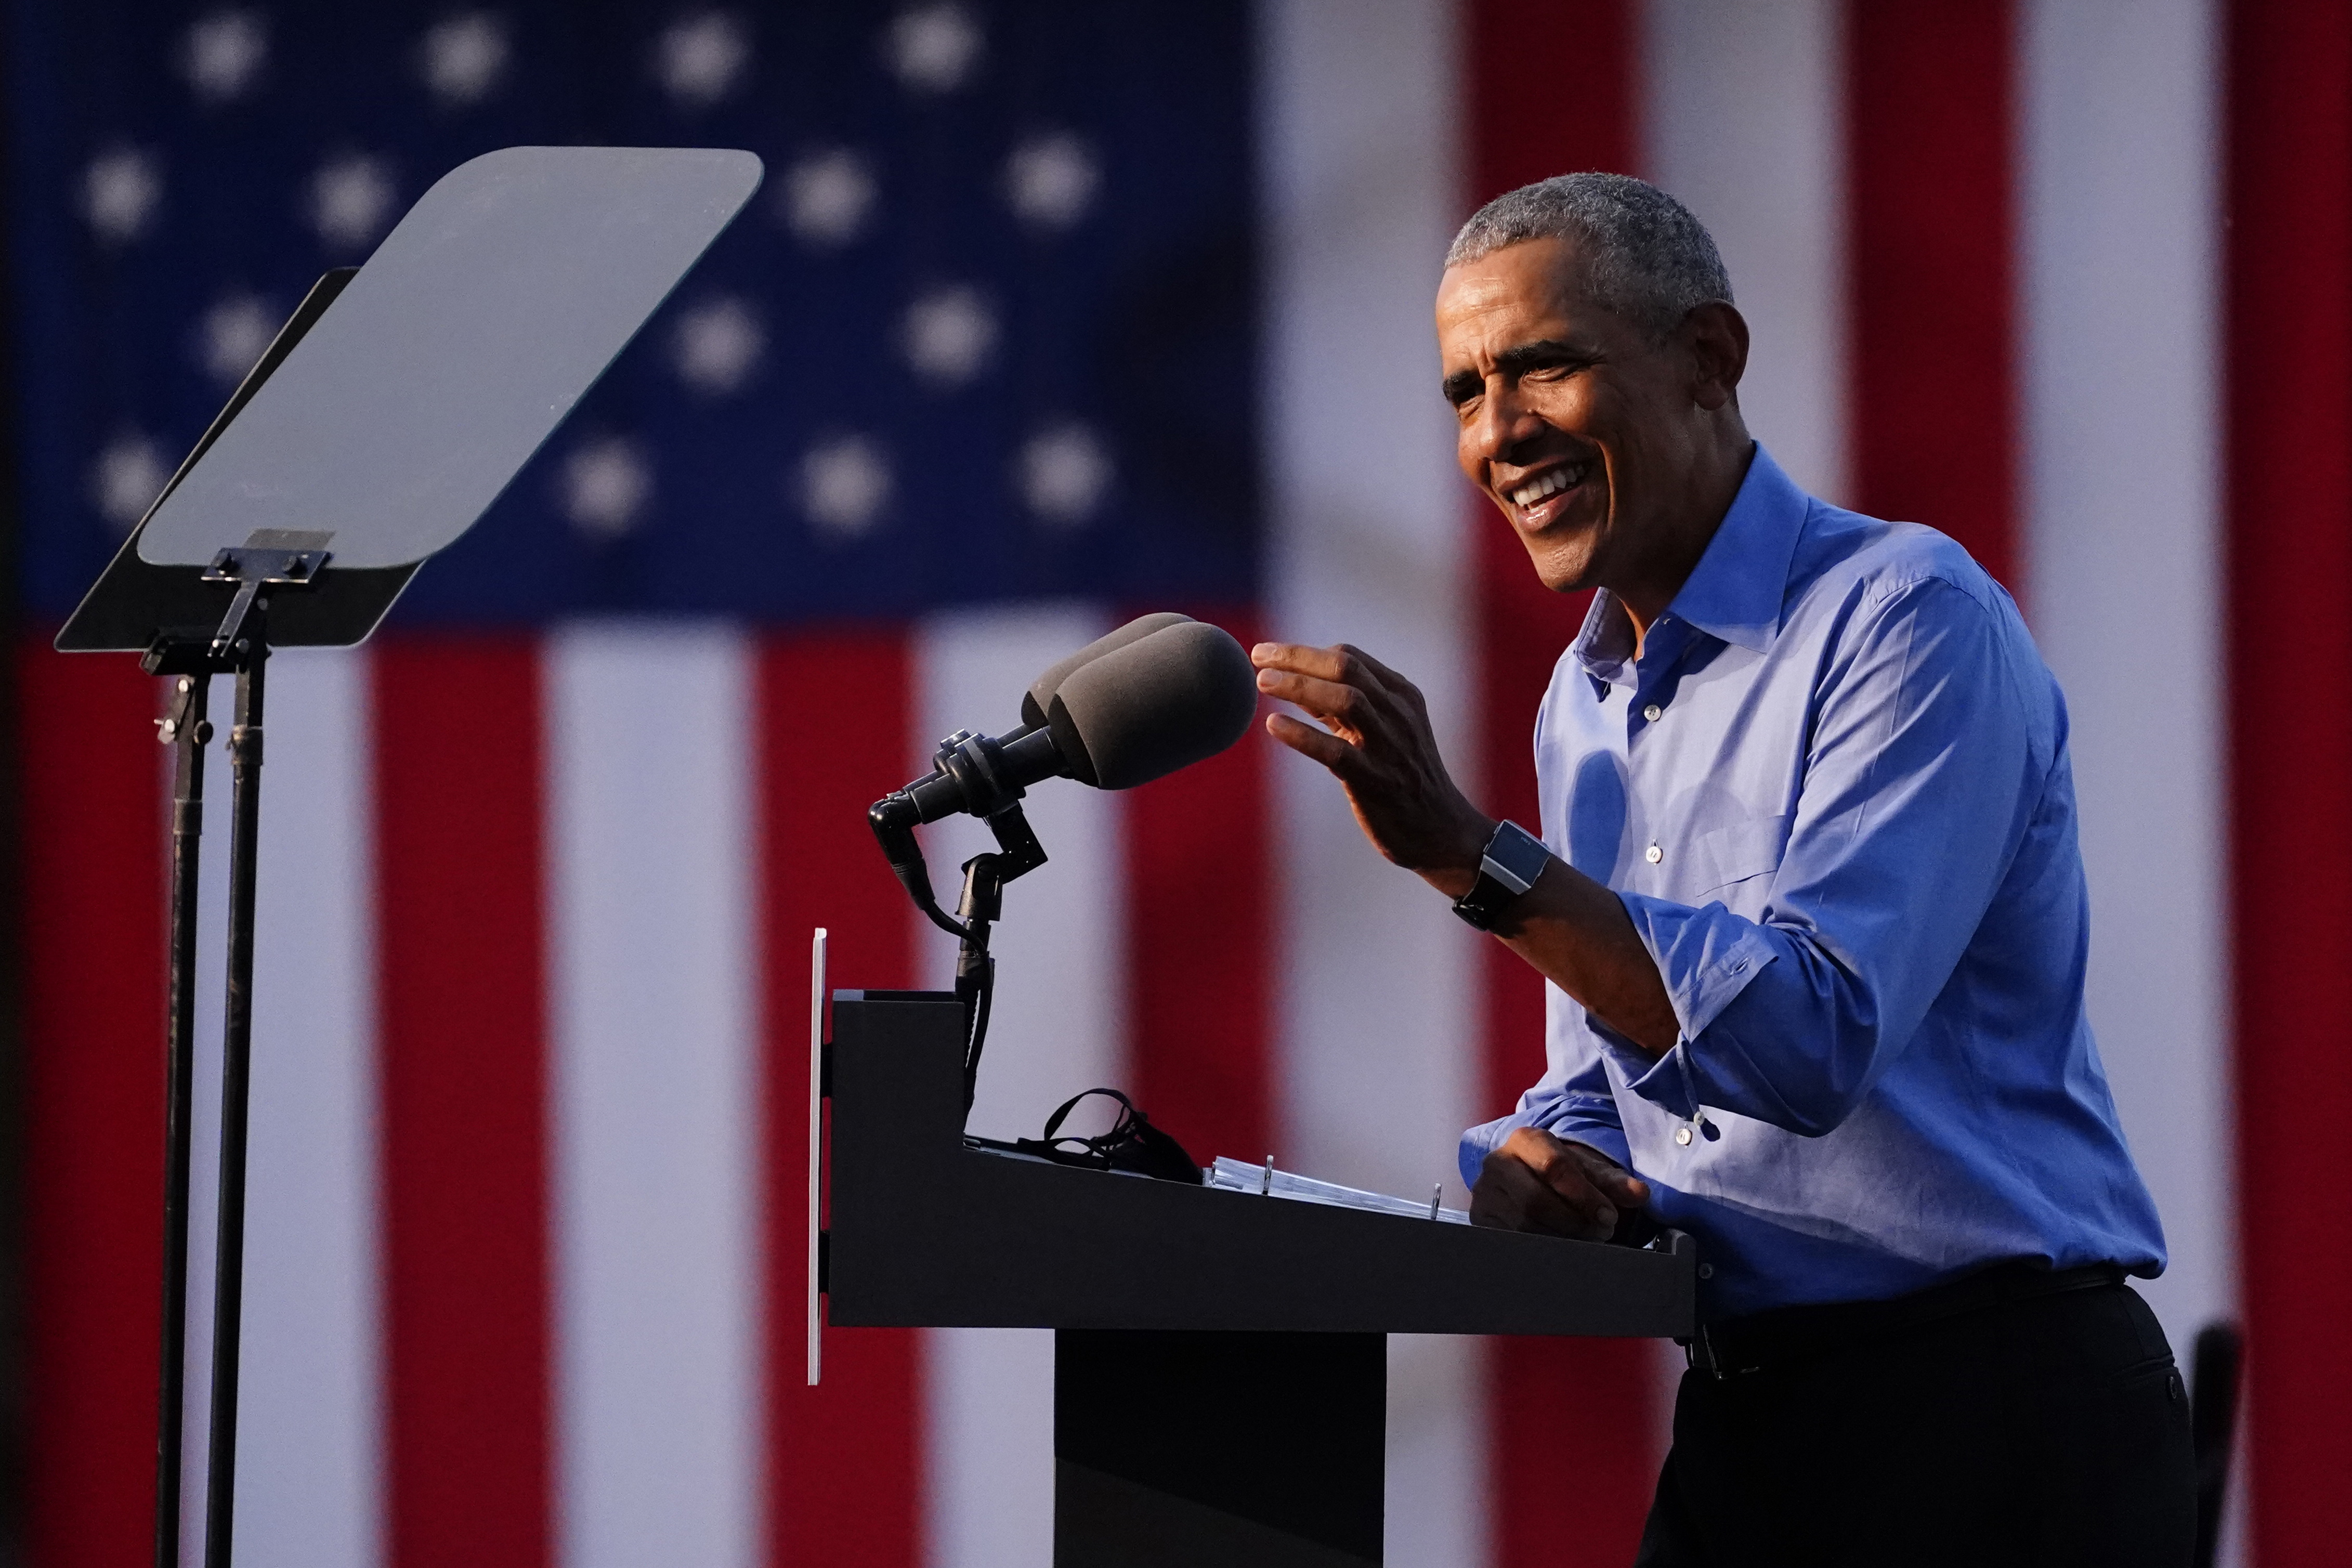 Obama slams Trump at Biden rally, warns voters 'we can't be complacent